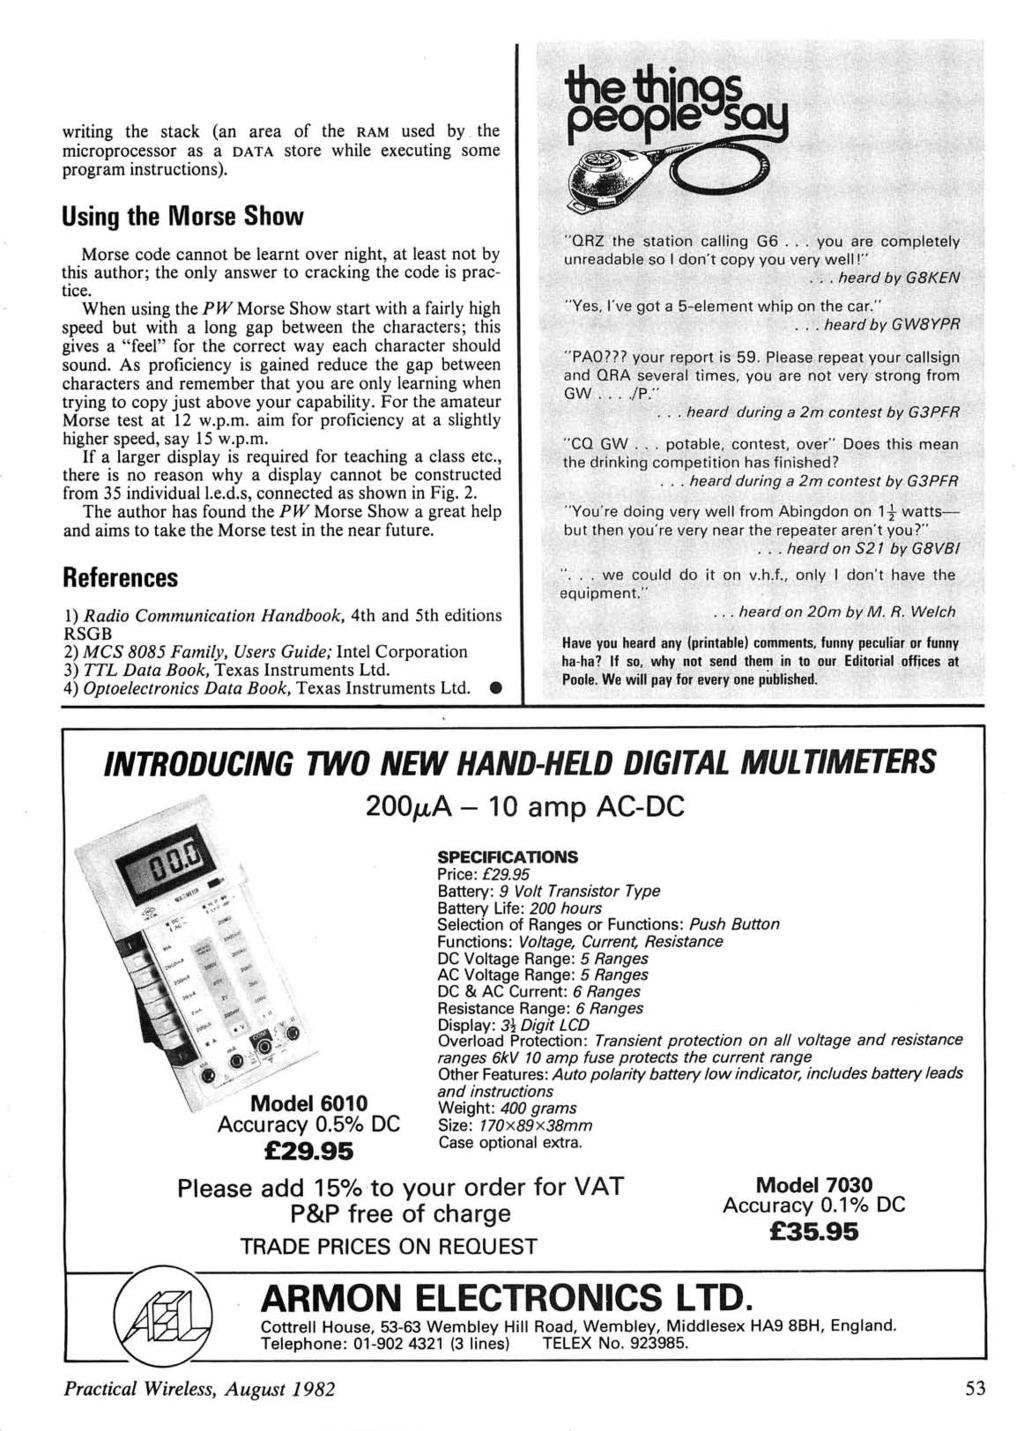 www.americanradiohistory.com writing the stack (an area of the RAM used by the microprocessor as a DATA store while executing some program instructions).